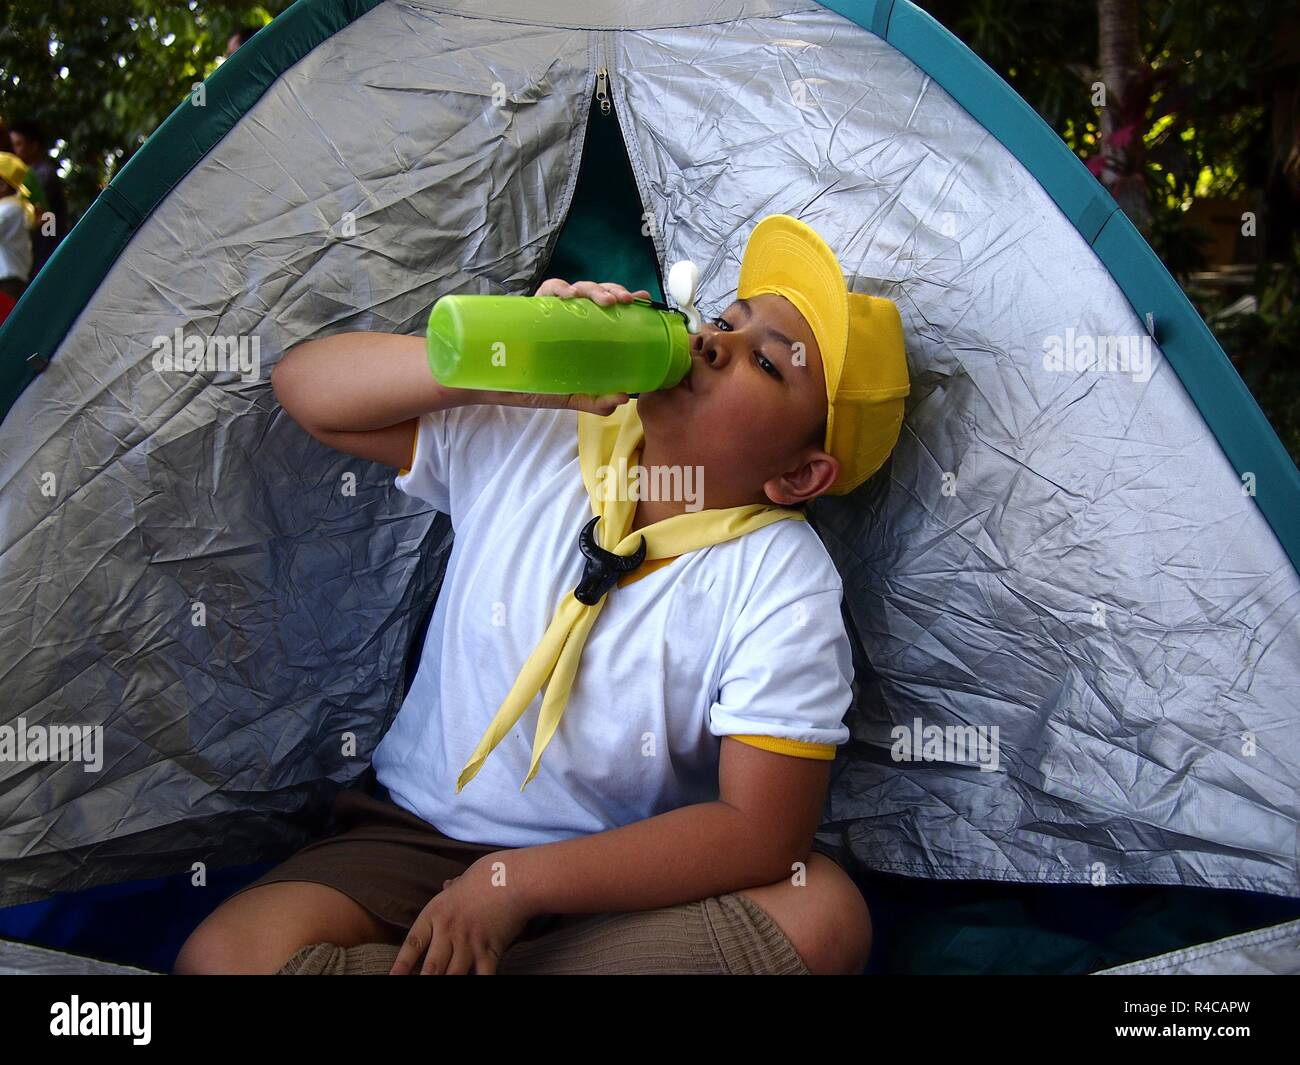 Photo of a young boy scout inside a camping tent drinking water - Stock Image